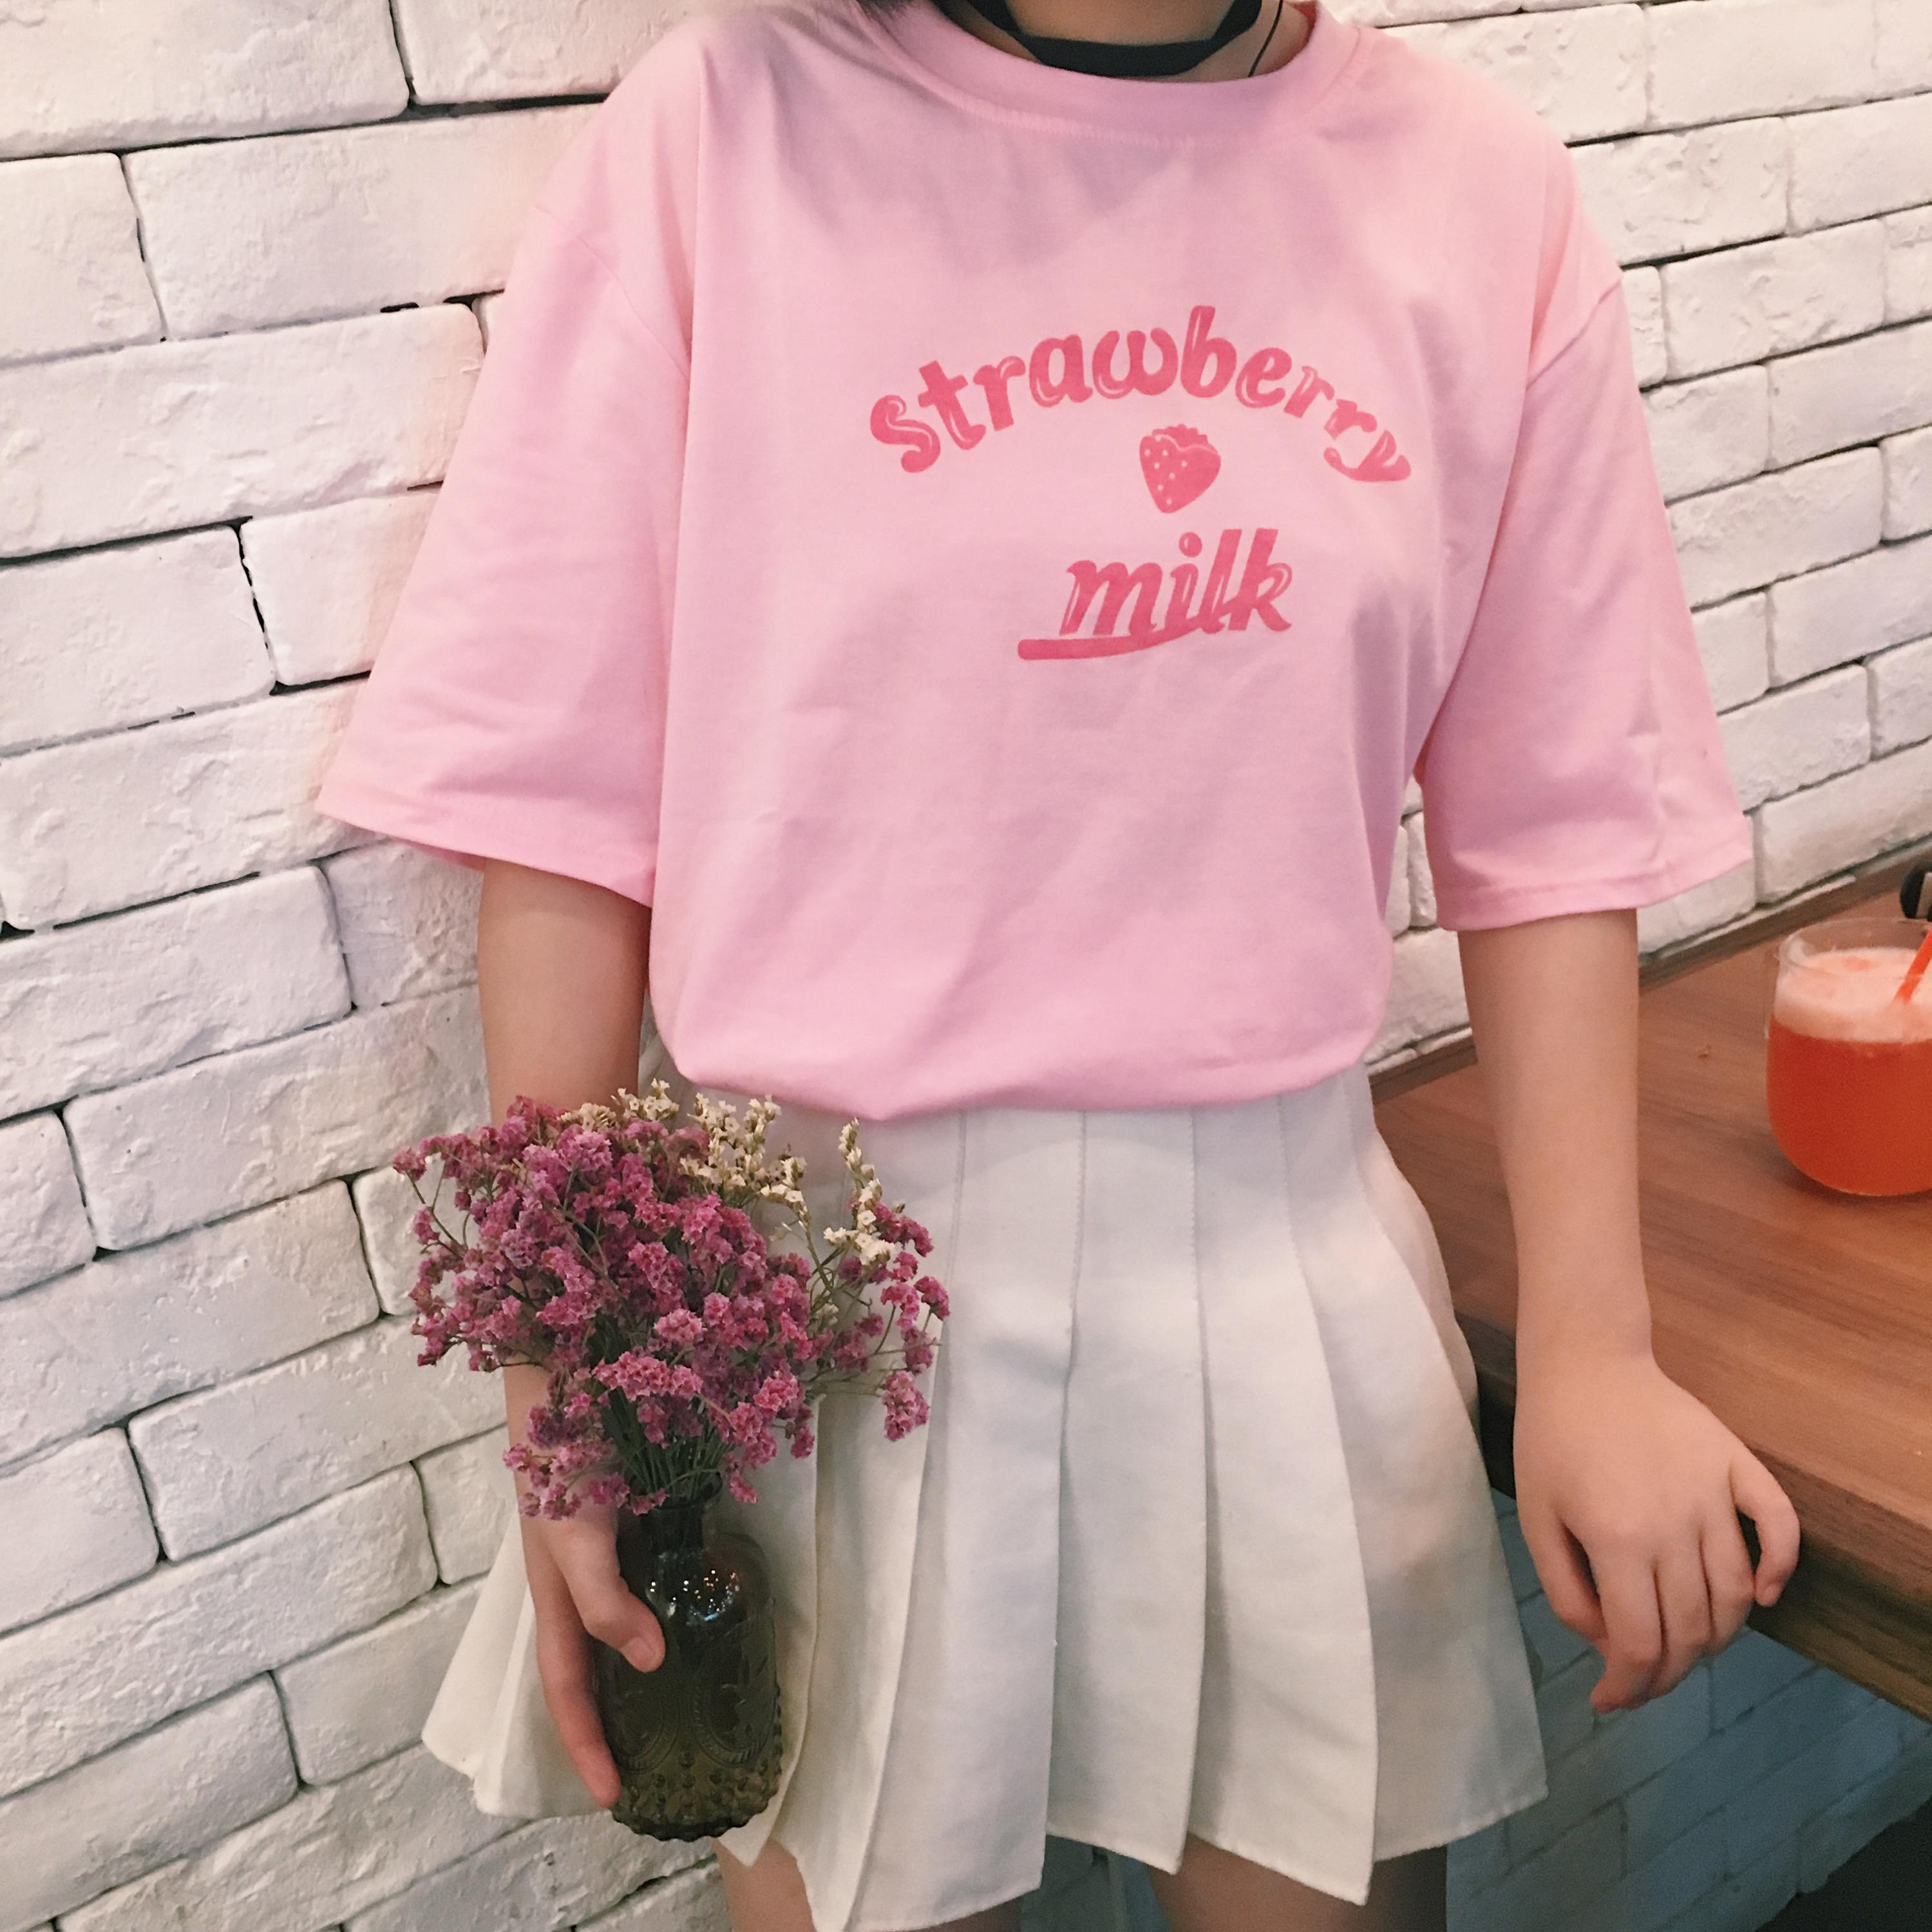 2018 Summer New Fashion Letter Printed Cote College Wind Short Sleeve Loose Female T-shirts